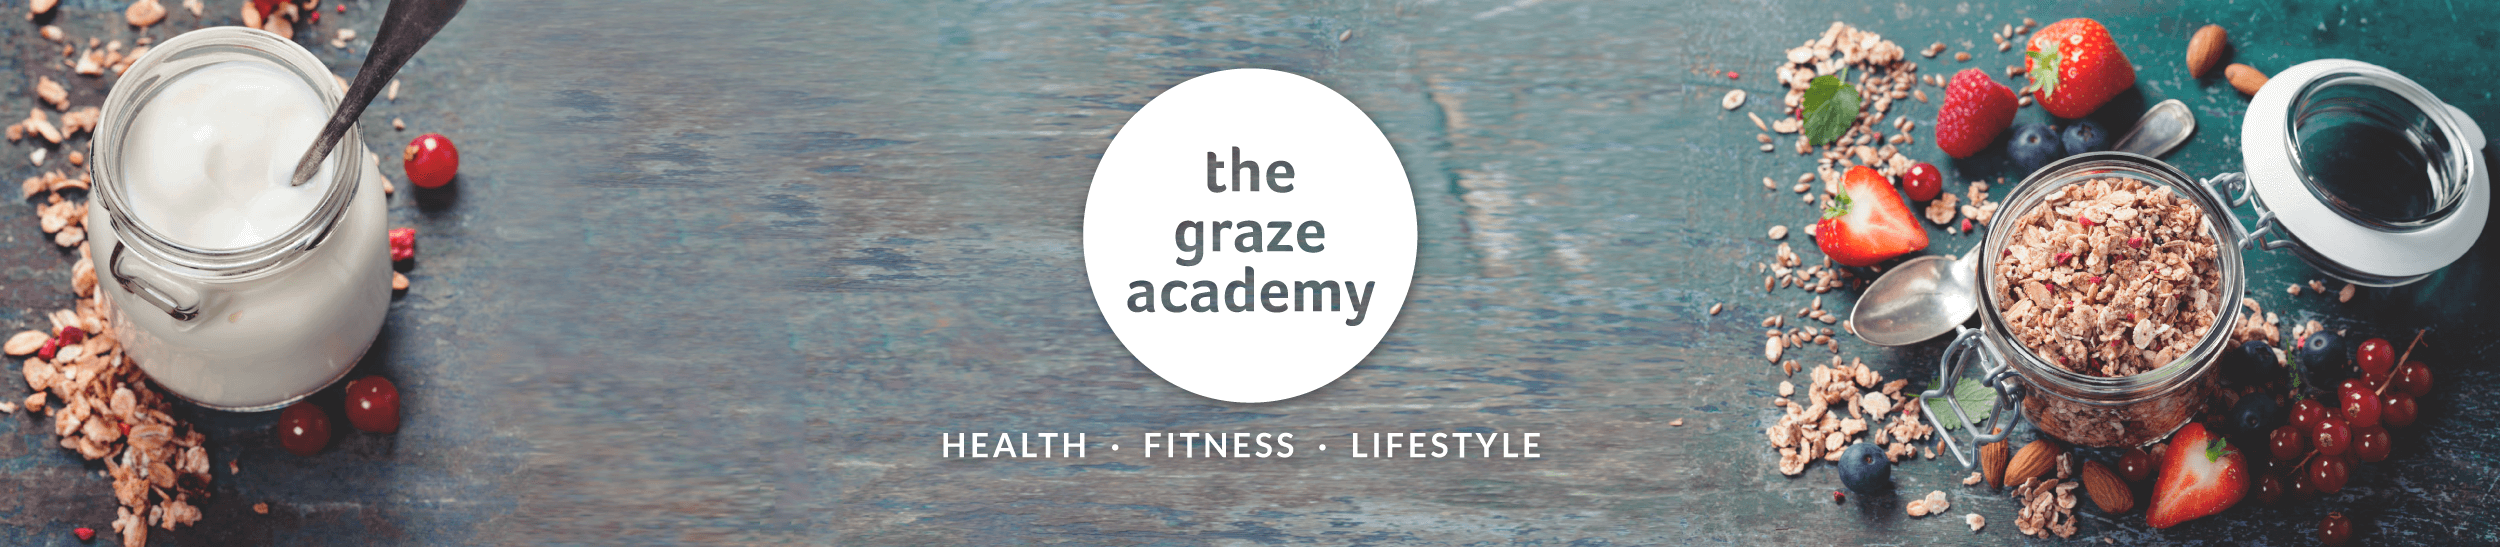 The Graze Academy Blog for health, fitness and lifestyle articles and news.